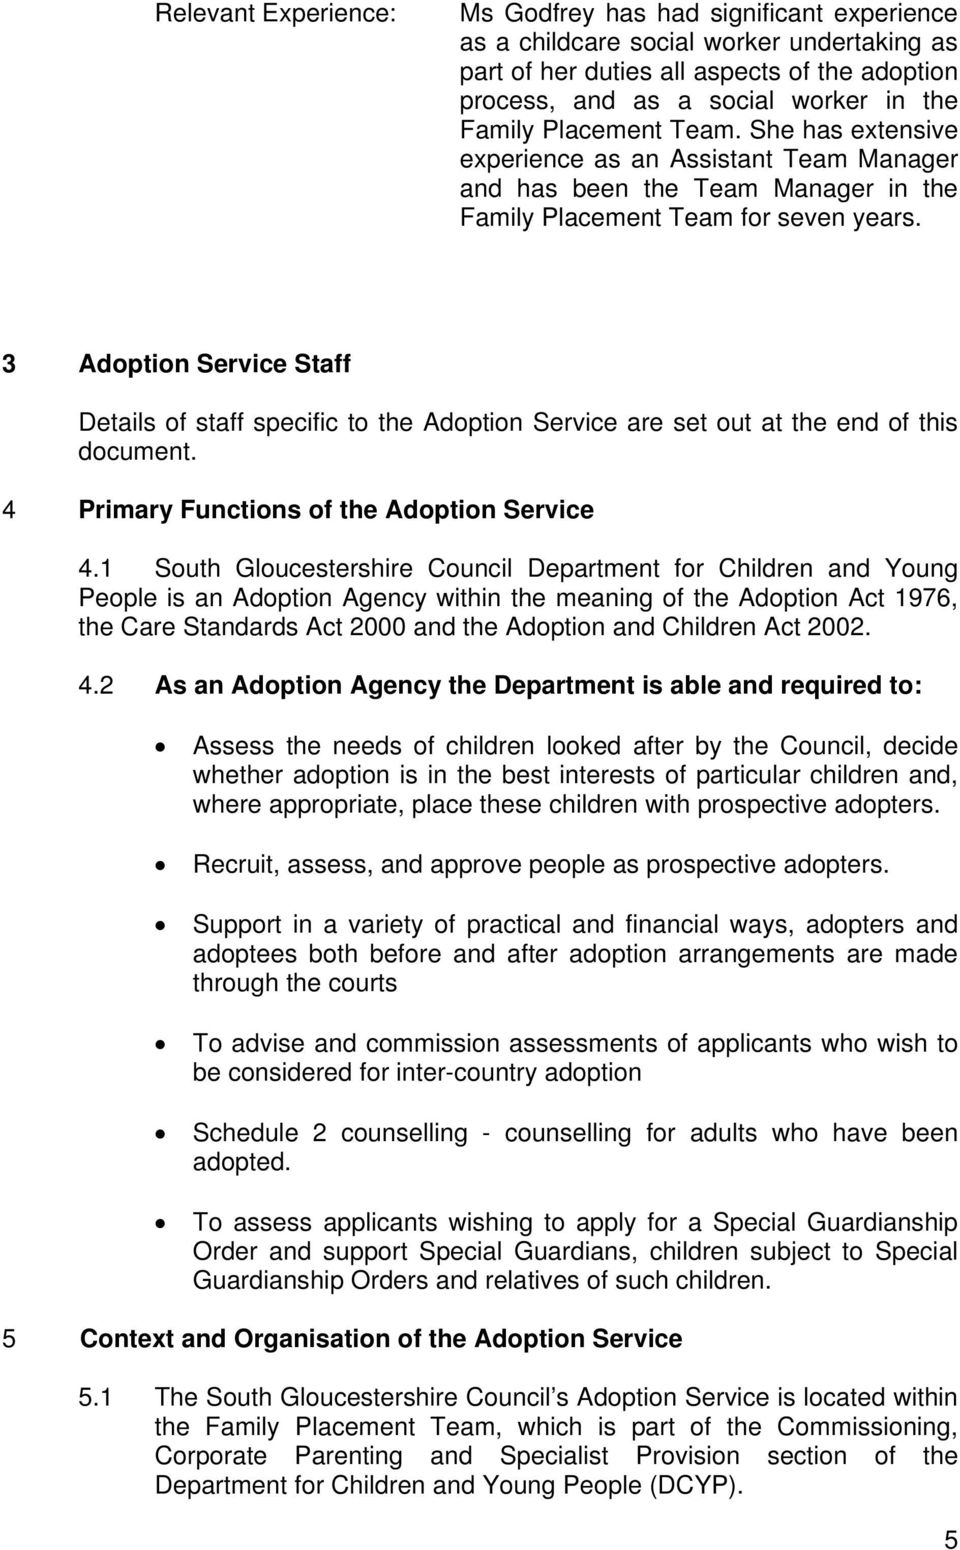 3 Adoption Service Staff Details of staff specific to the Adoption Service are set out at the end of this document. 4 Primary Functions of the Adoption Service 4.